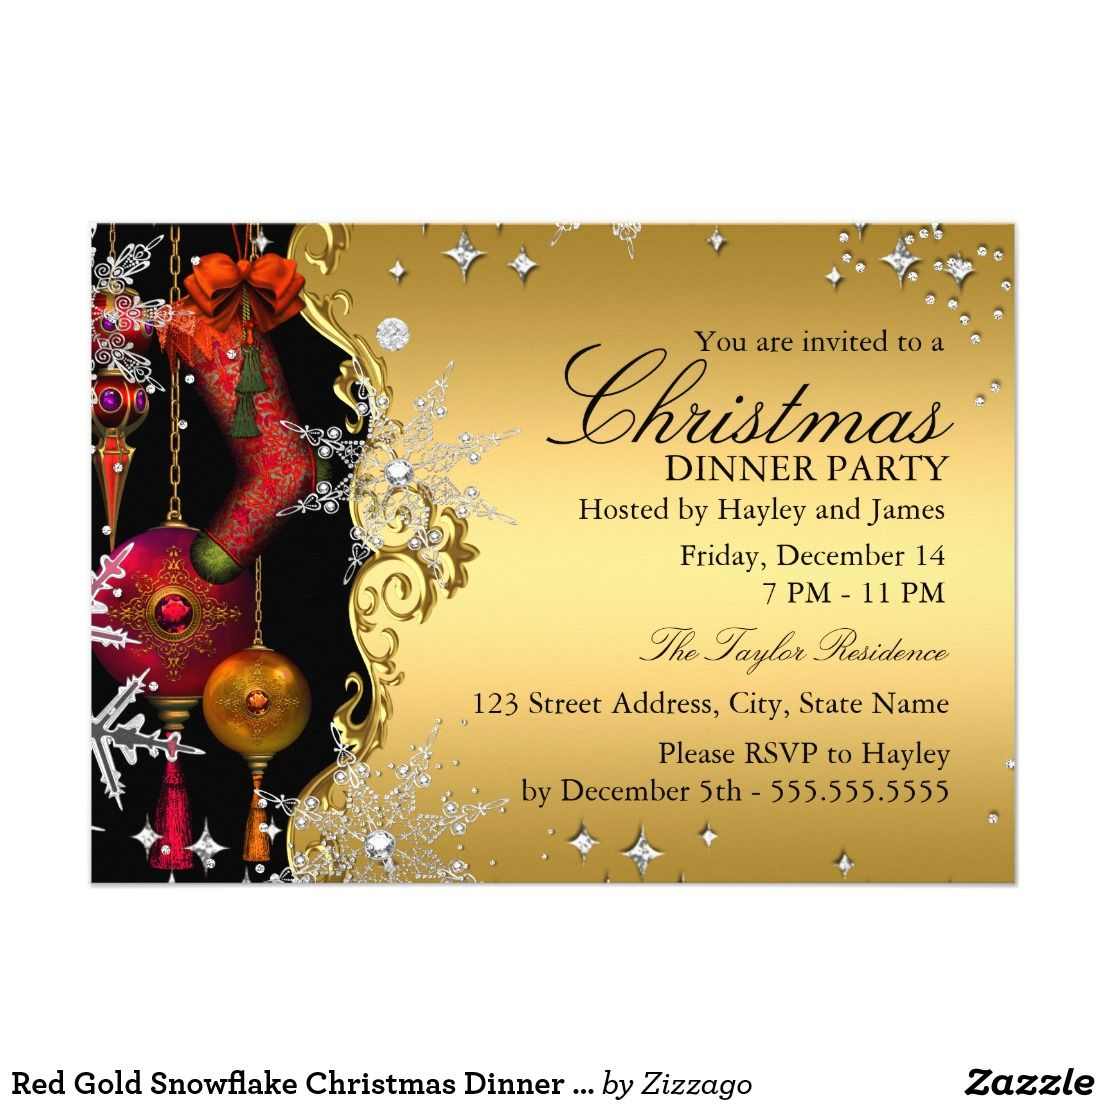 Red Gold Snowflake Christmas Dinner Party 4a Card | Dinner party ...